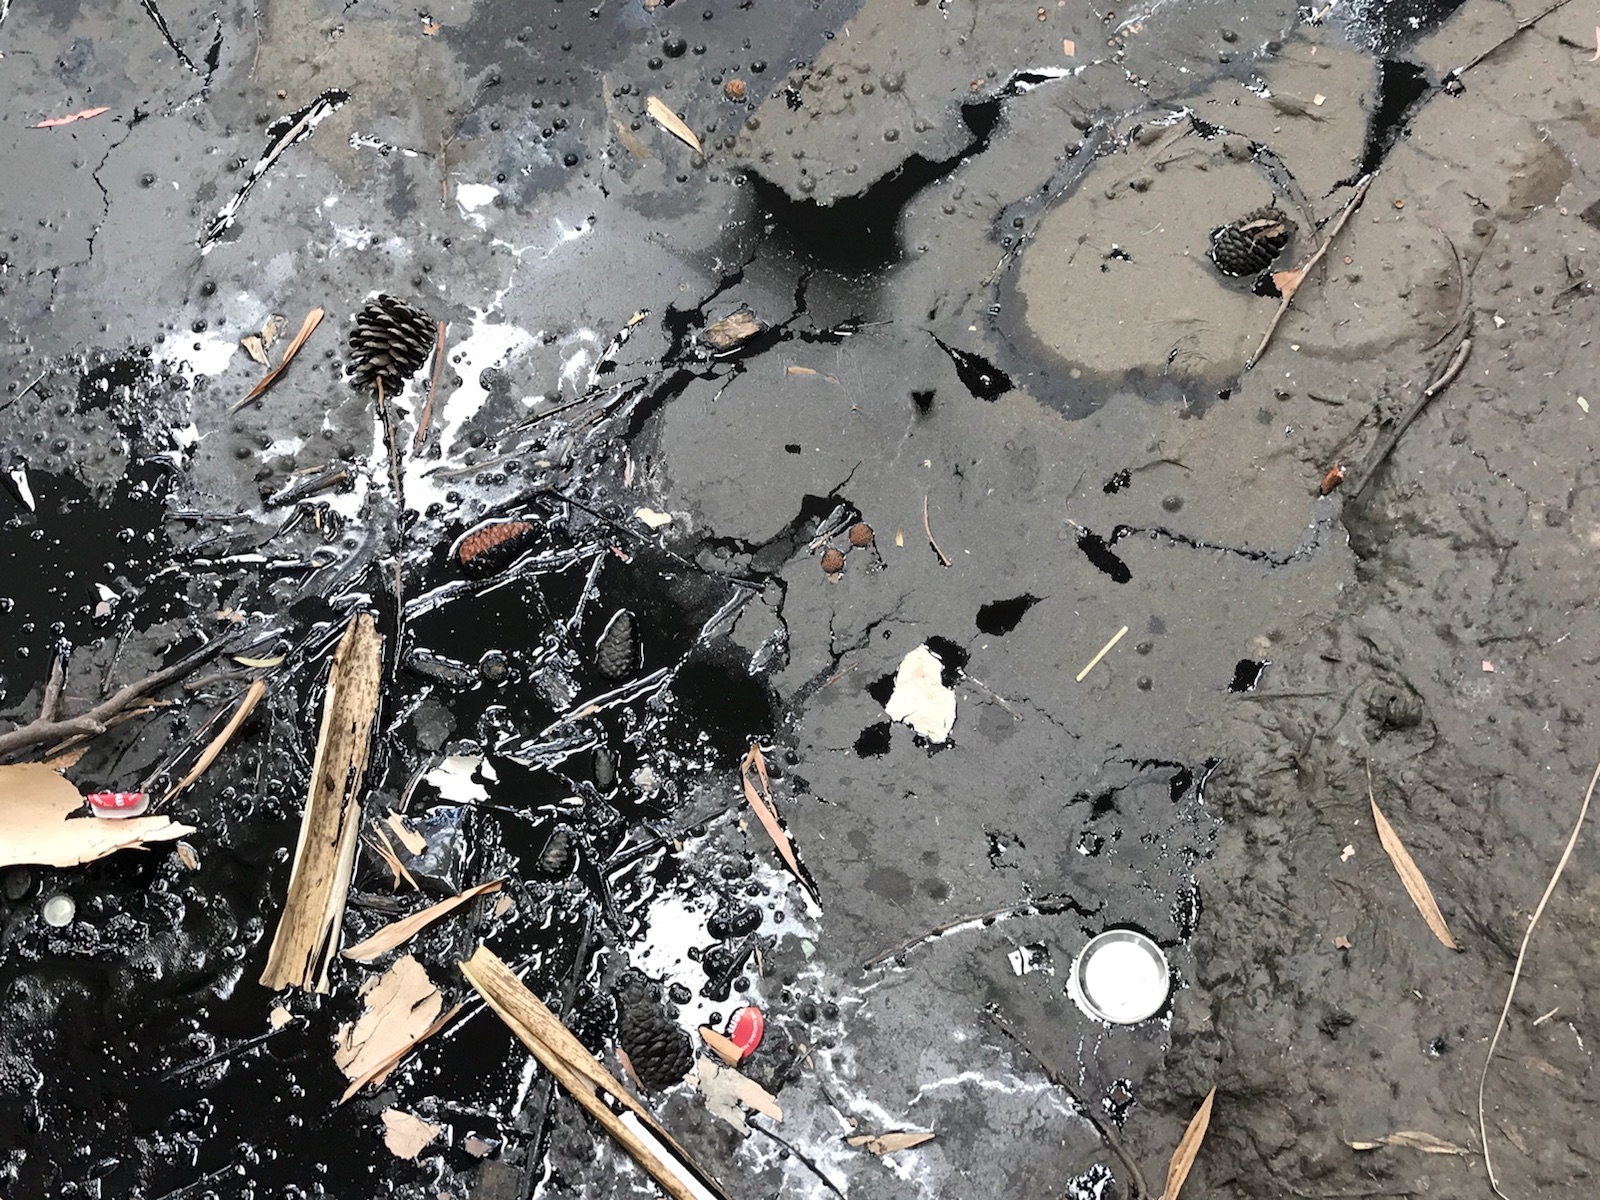 An active tar pit, with a mixture of sticks, pine cones, buttons and plastic bottle caps that have fallen, or been dropped in by visitors to the musuem